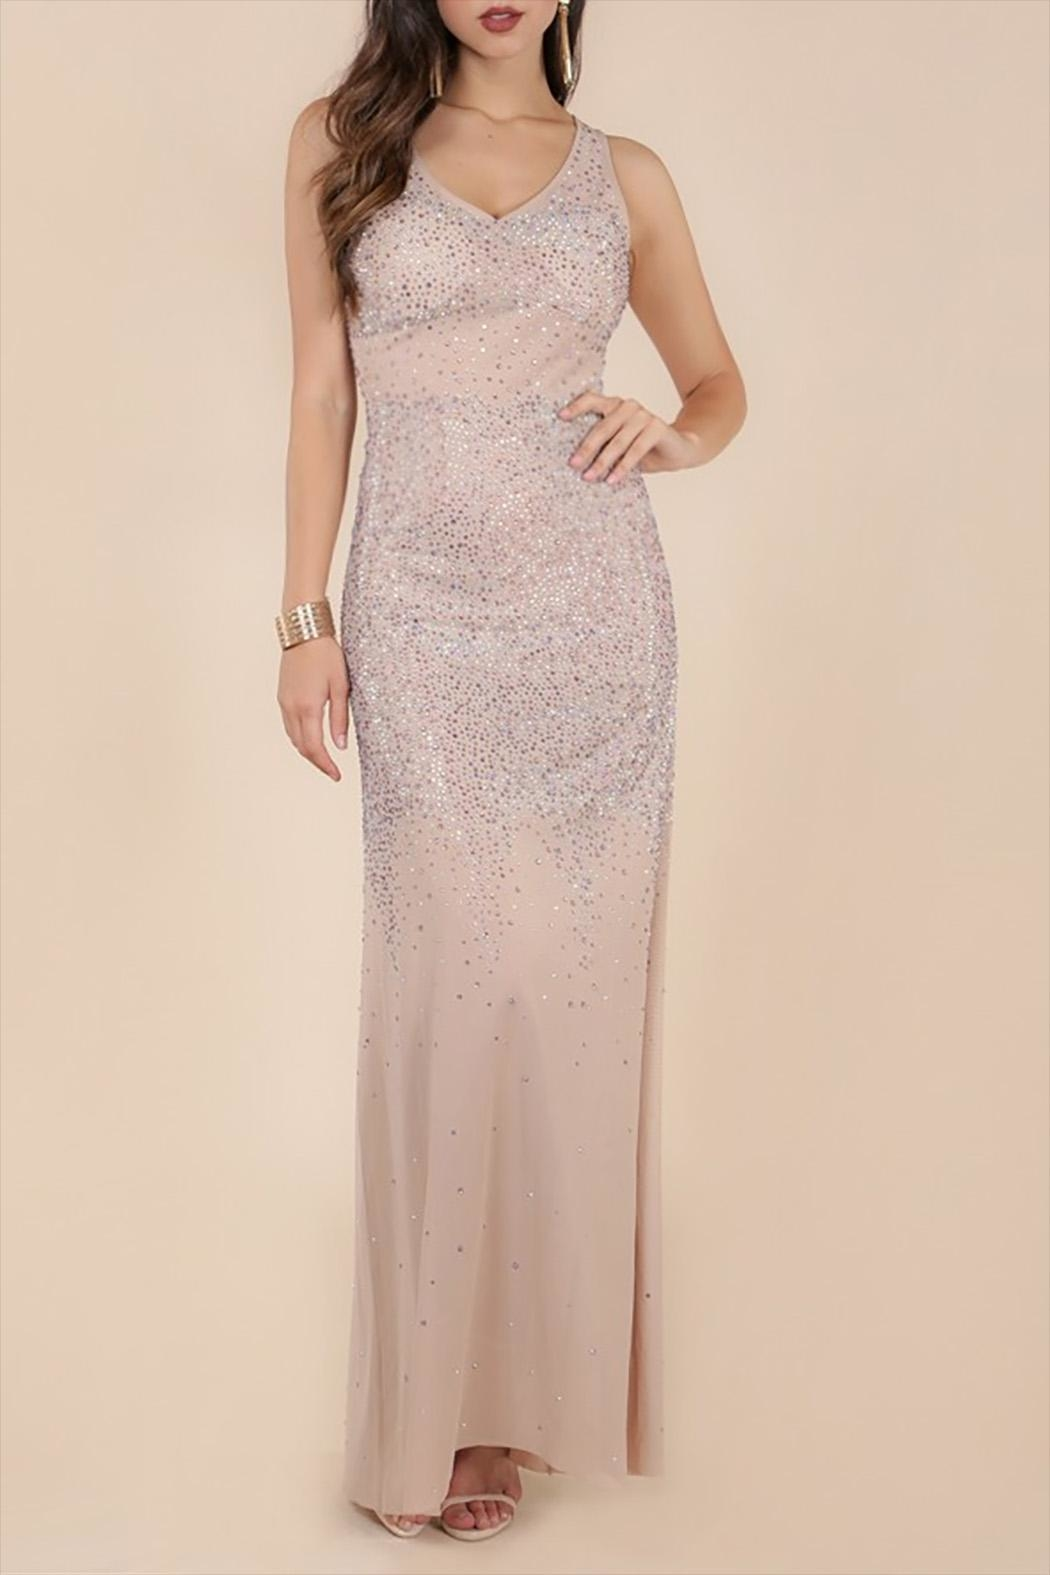 Wow Couture Rhinestones Maxi Dress - Front Cropped Image